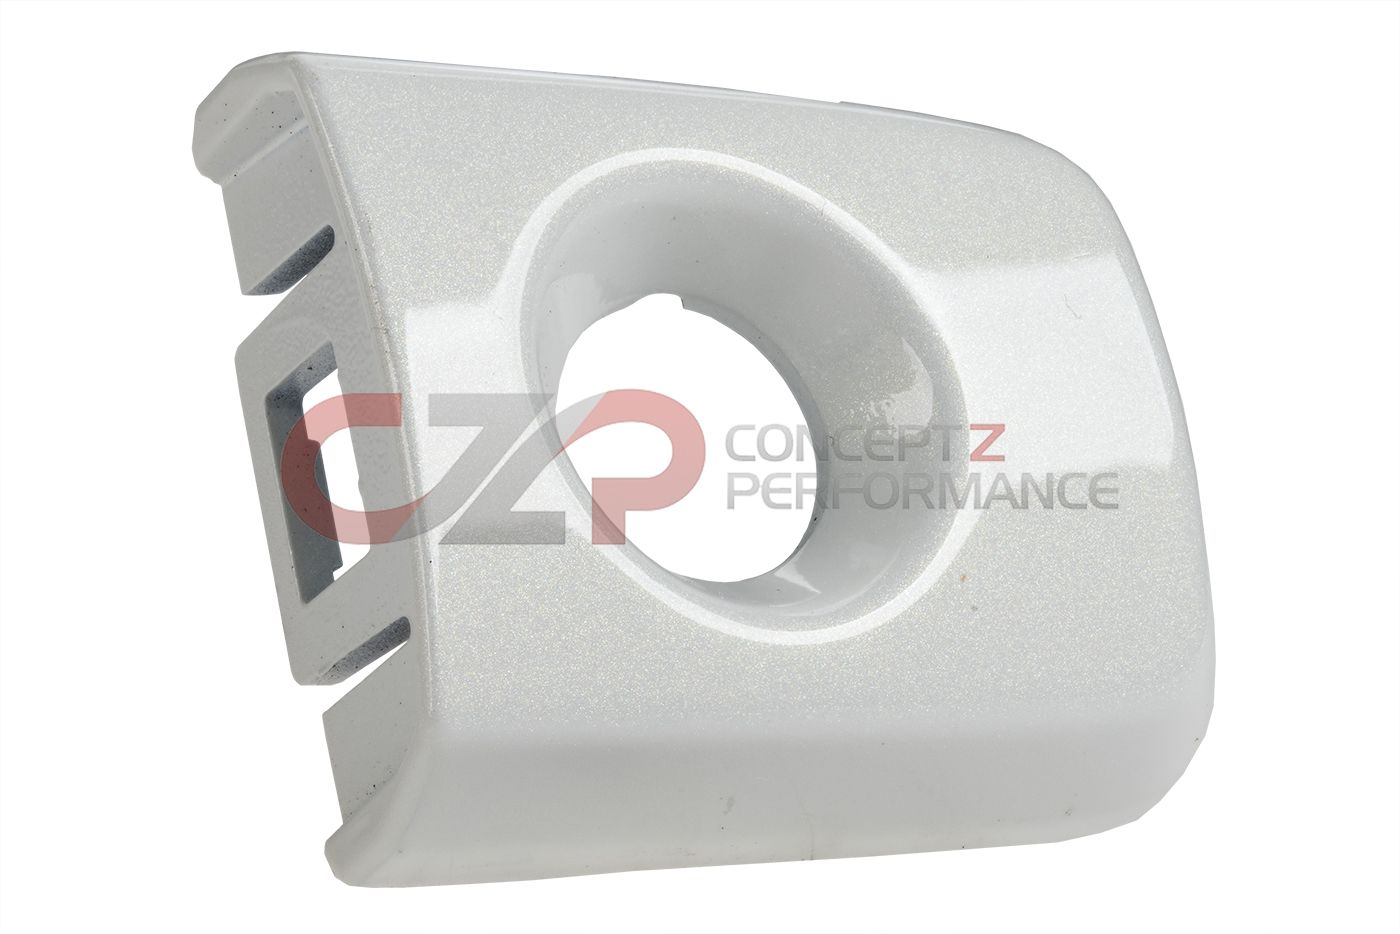 Infiniti OEM LH Keyhole Cover Outside Handle Escutcheon, RH QAA Moonlight White Pearl Coupe 09+ CV36